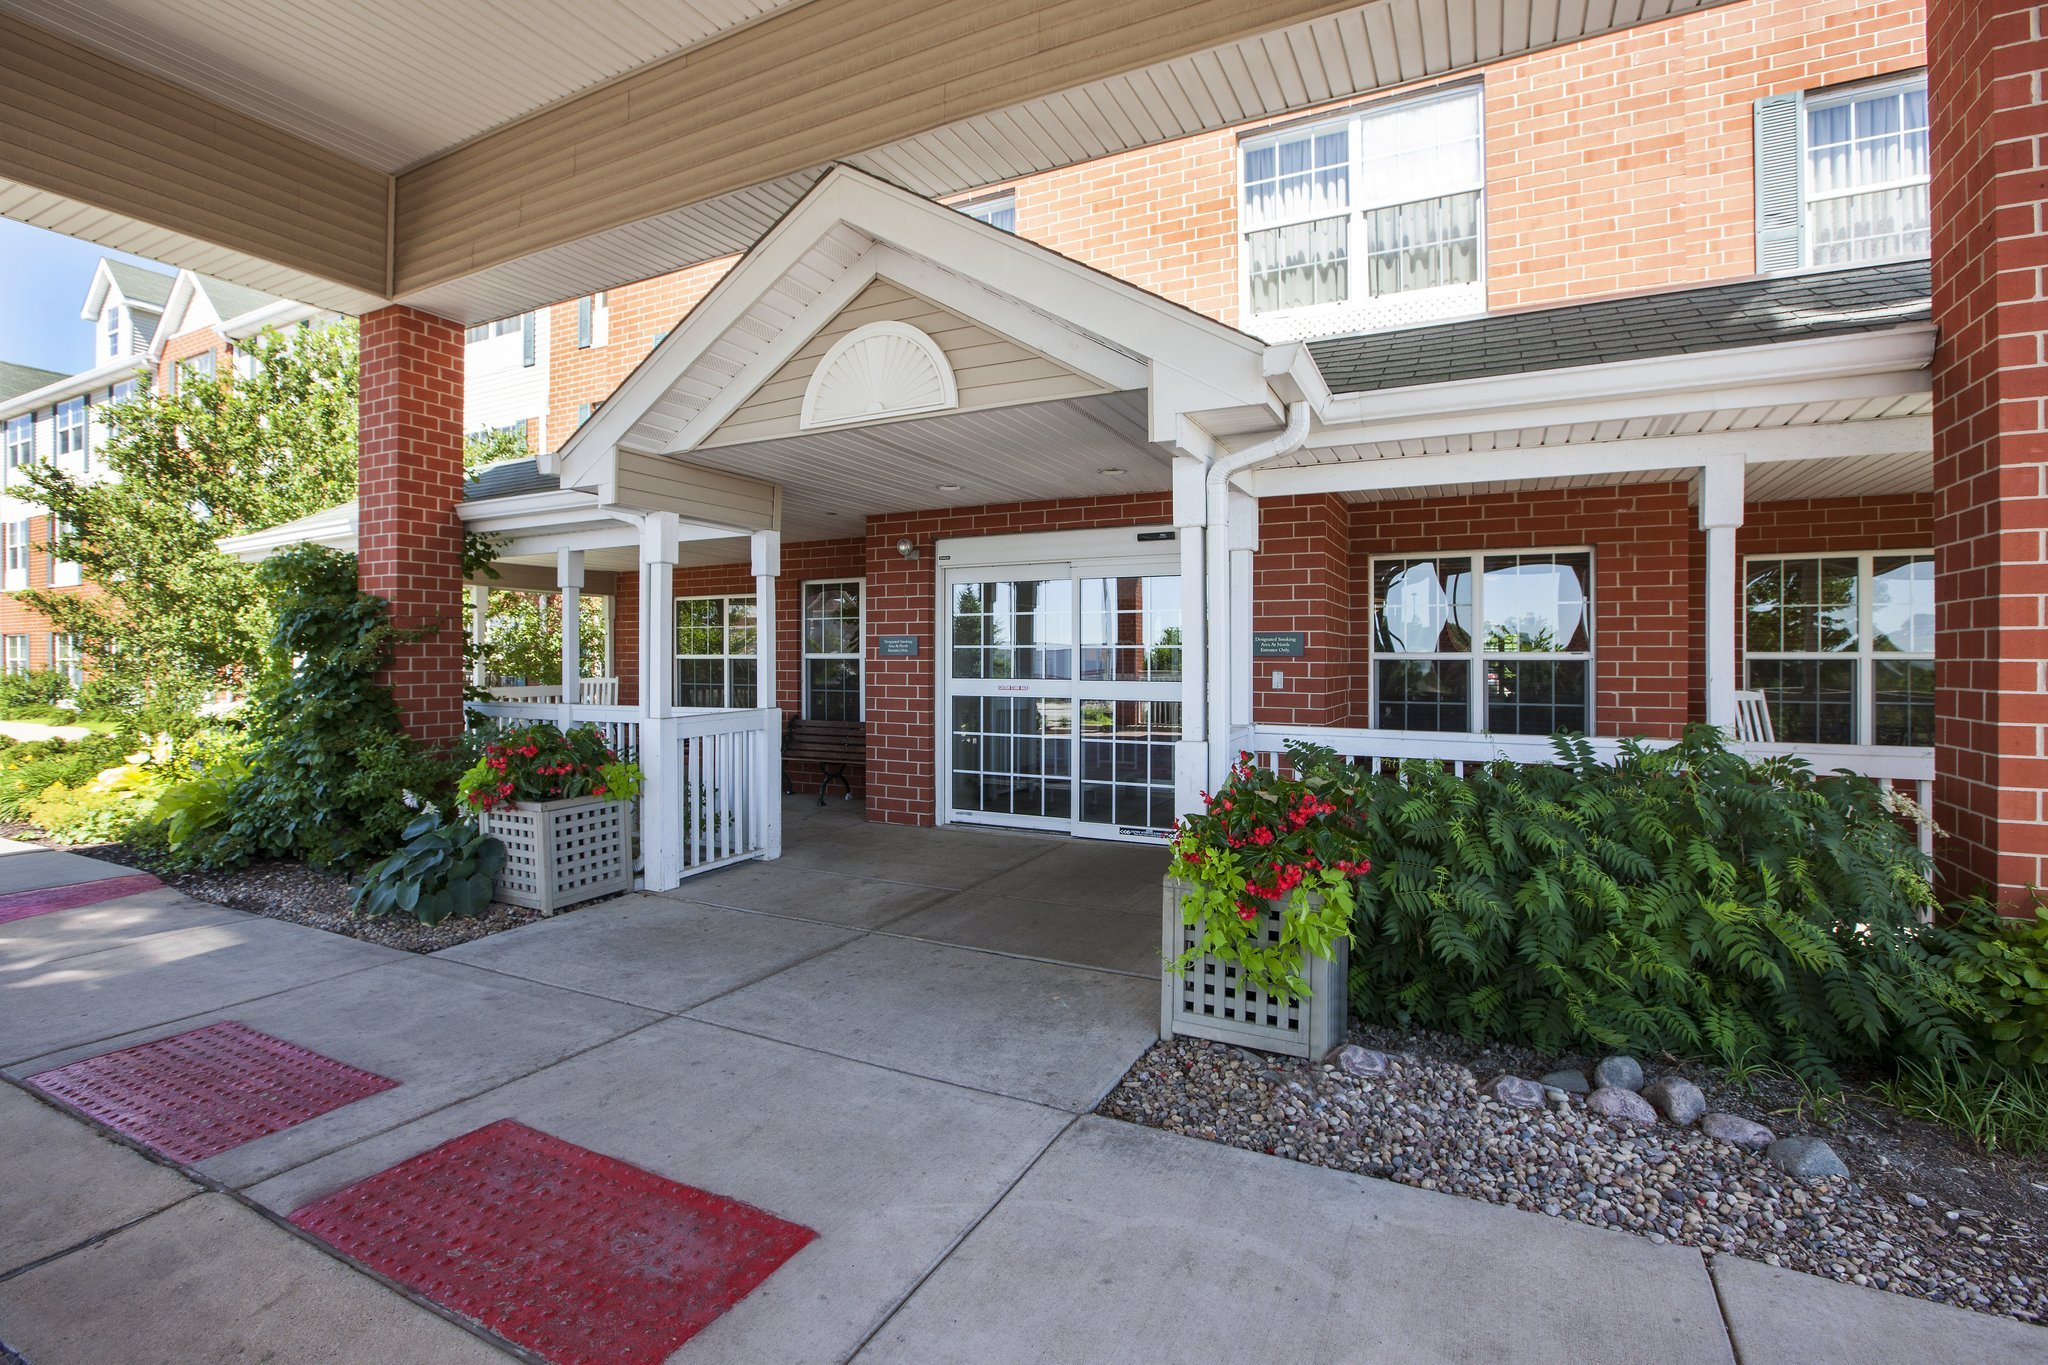 Country Inn & Suites By Carlson, Tinley Park - UPDATED ...